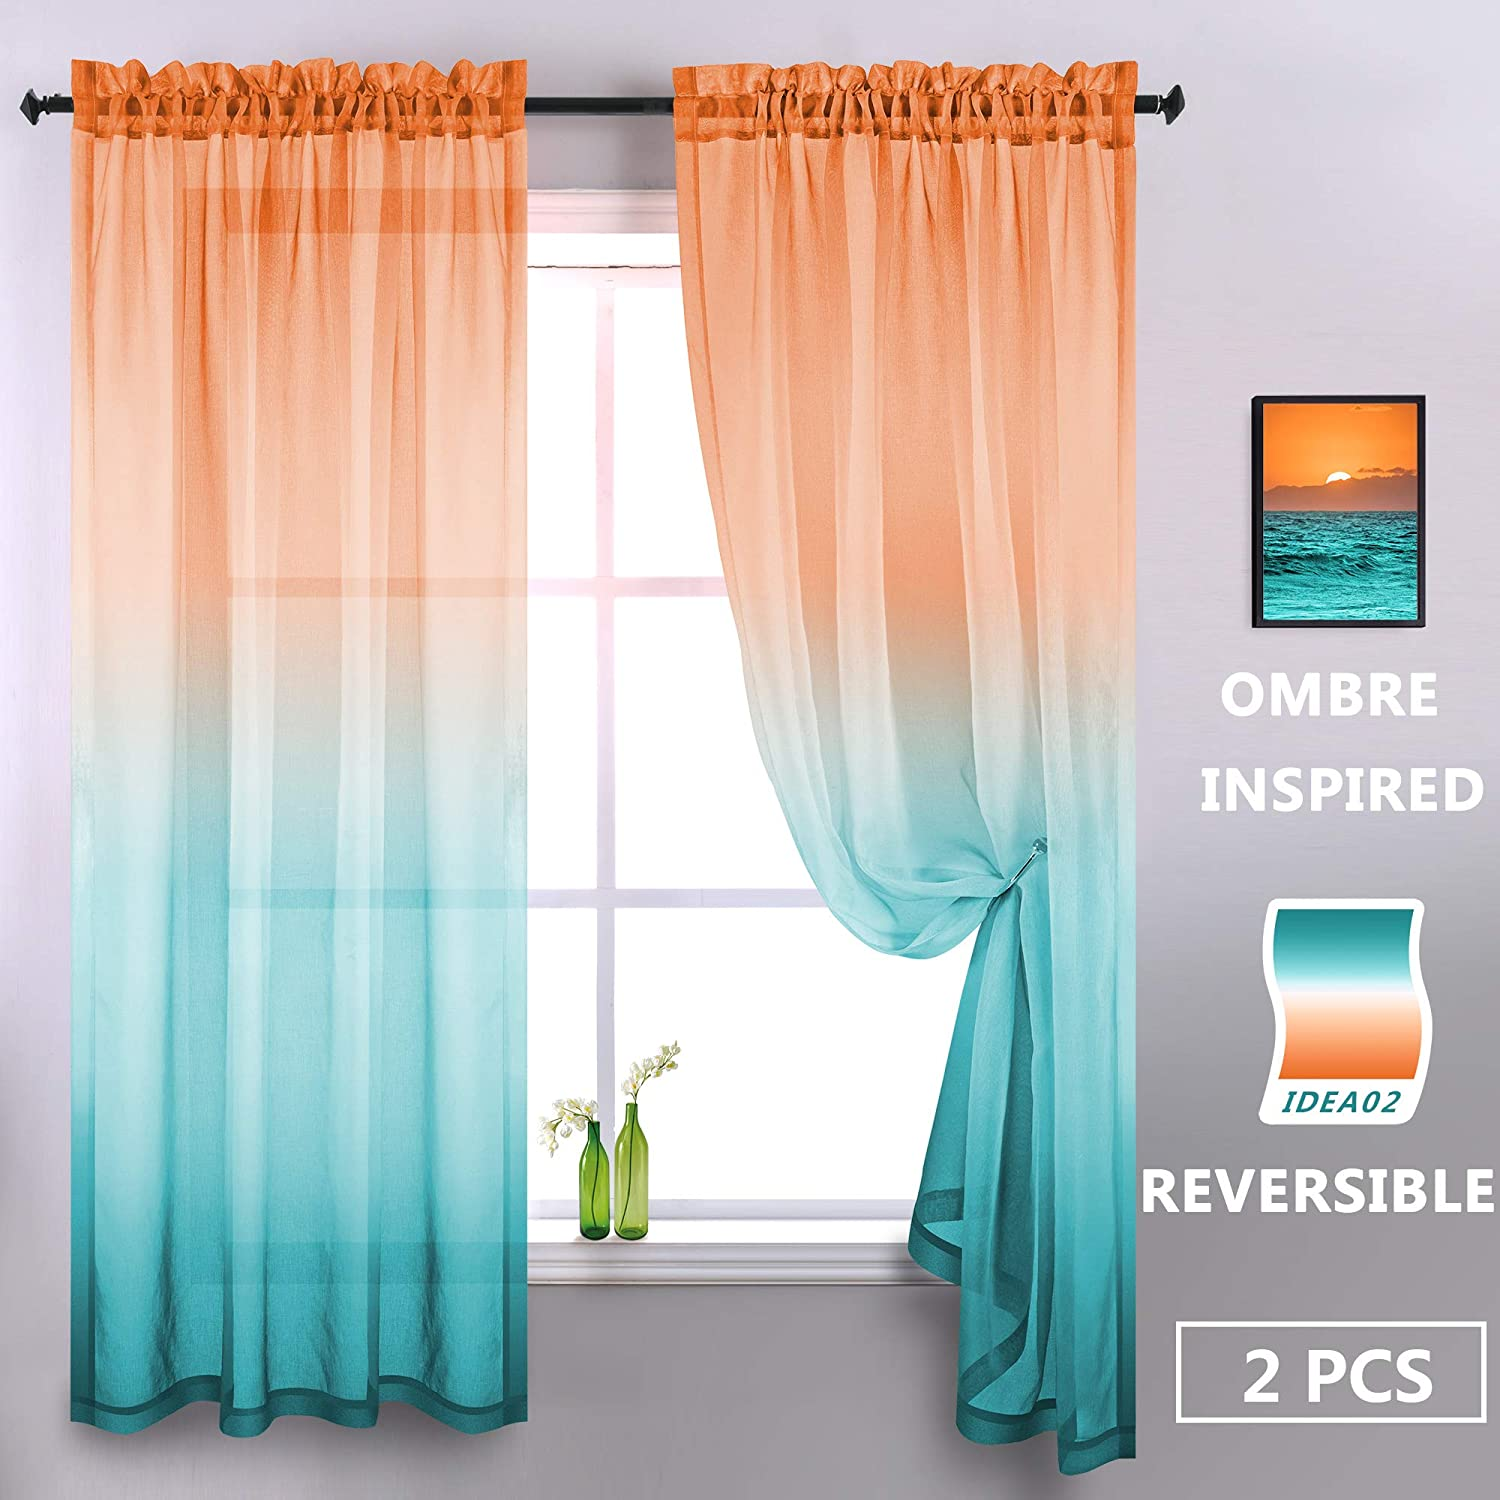 Orange and Green Sheer Curtains 84 Inch 2 Panels Modern Decorative Two Tone Window Semi Sheer Bright Color Ombre Curtains for Living Room Bedroom Coral Burnt Orange Yellow Mint Turquoise Peacock Teal